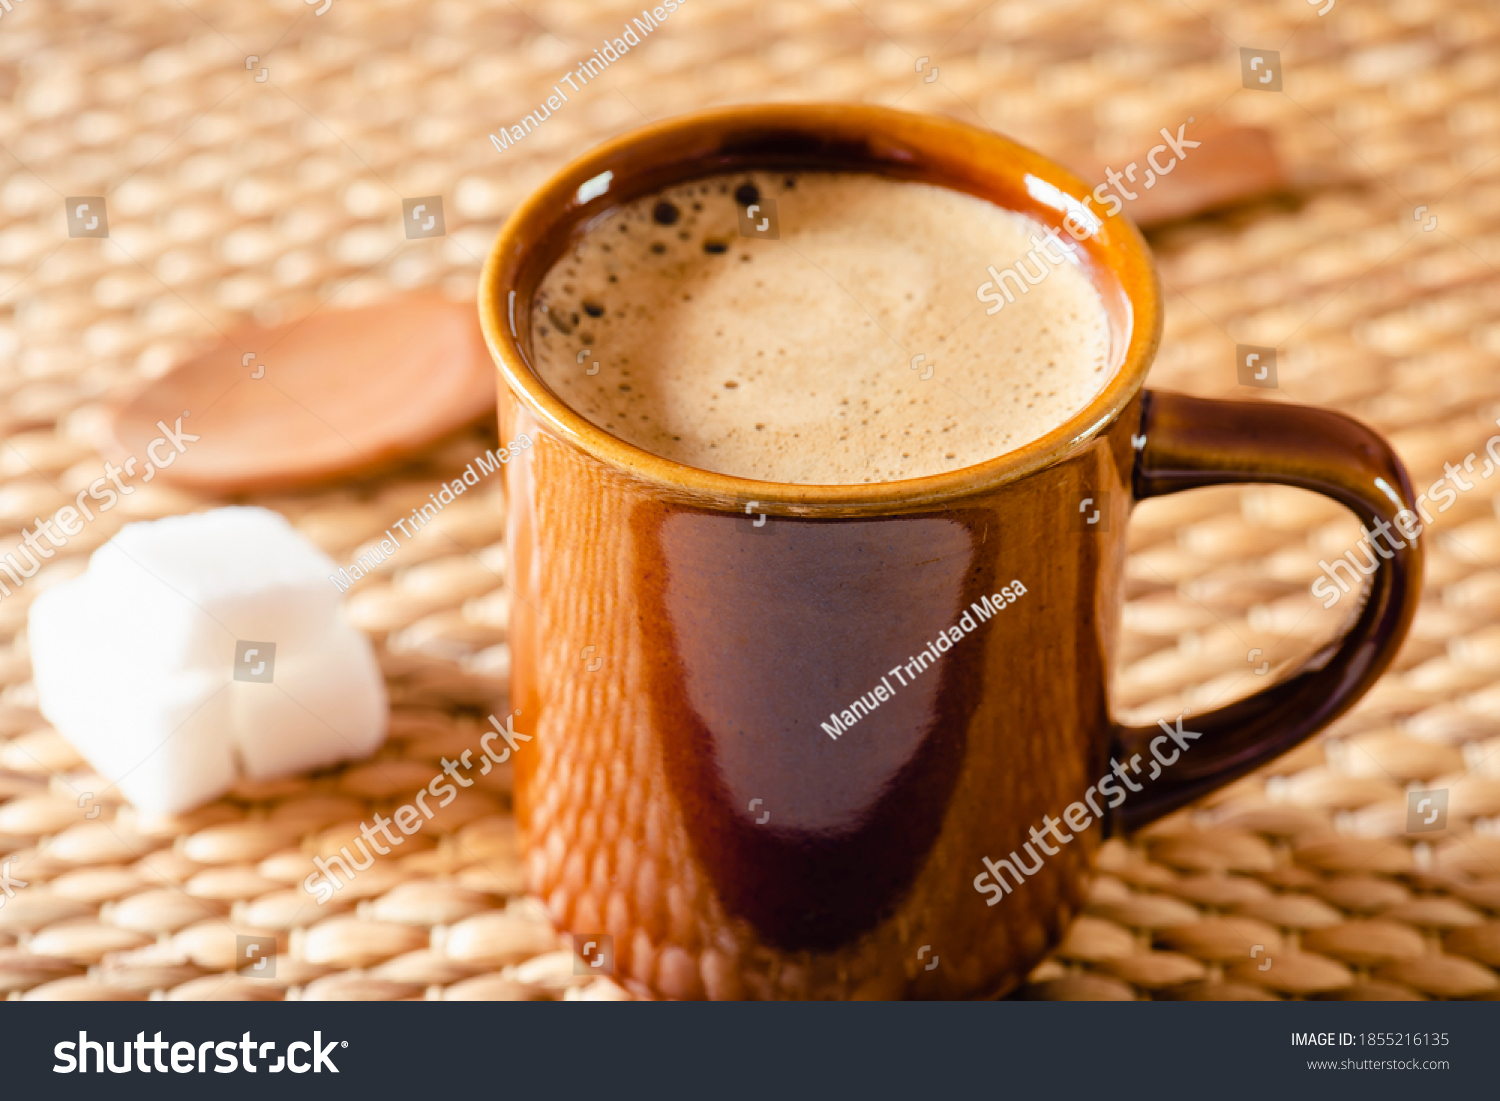 stock-photo-clay-cup-with-hot-coffee-on-